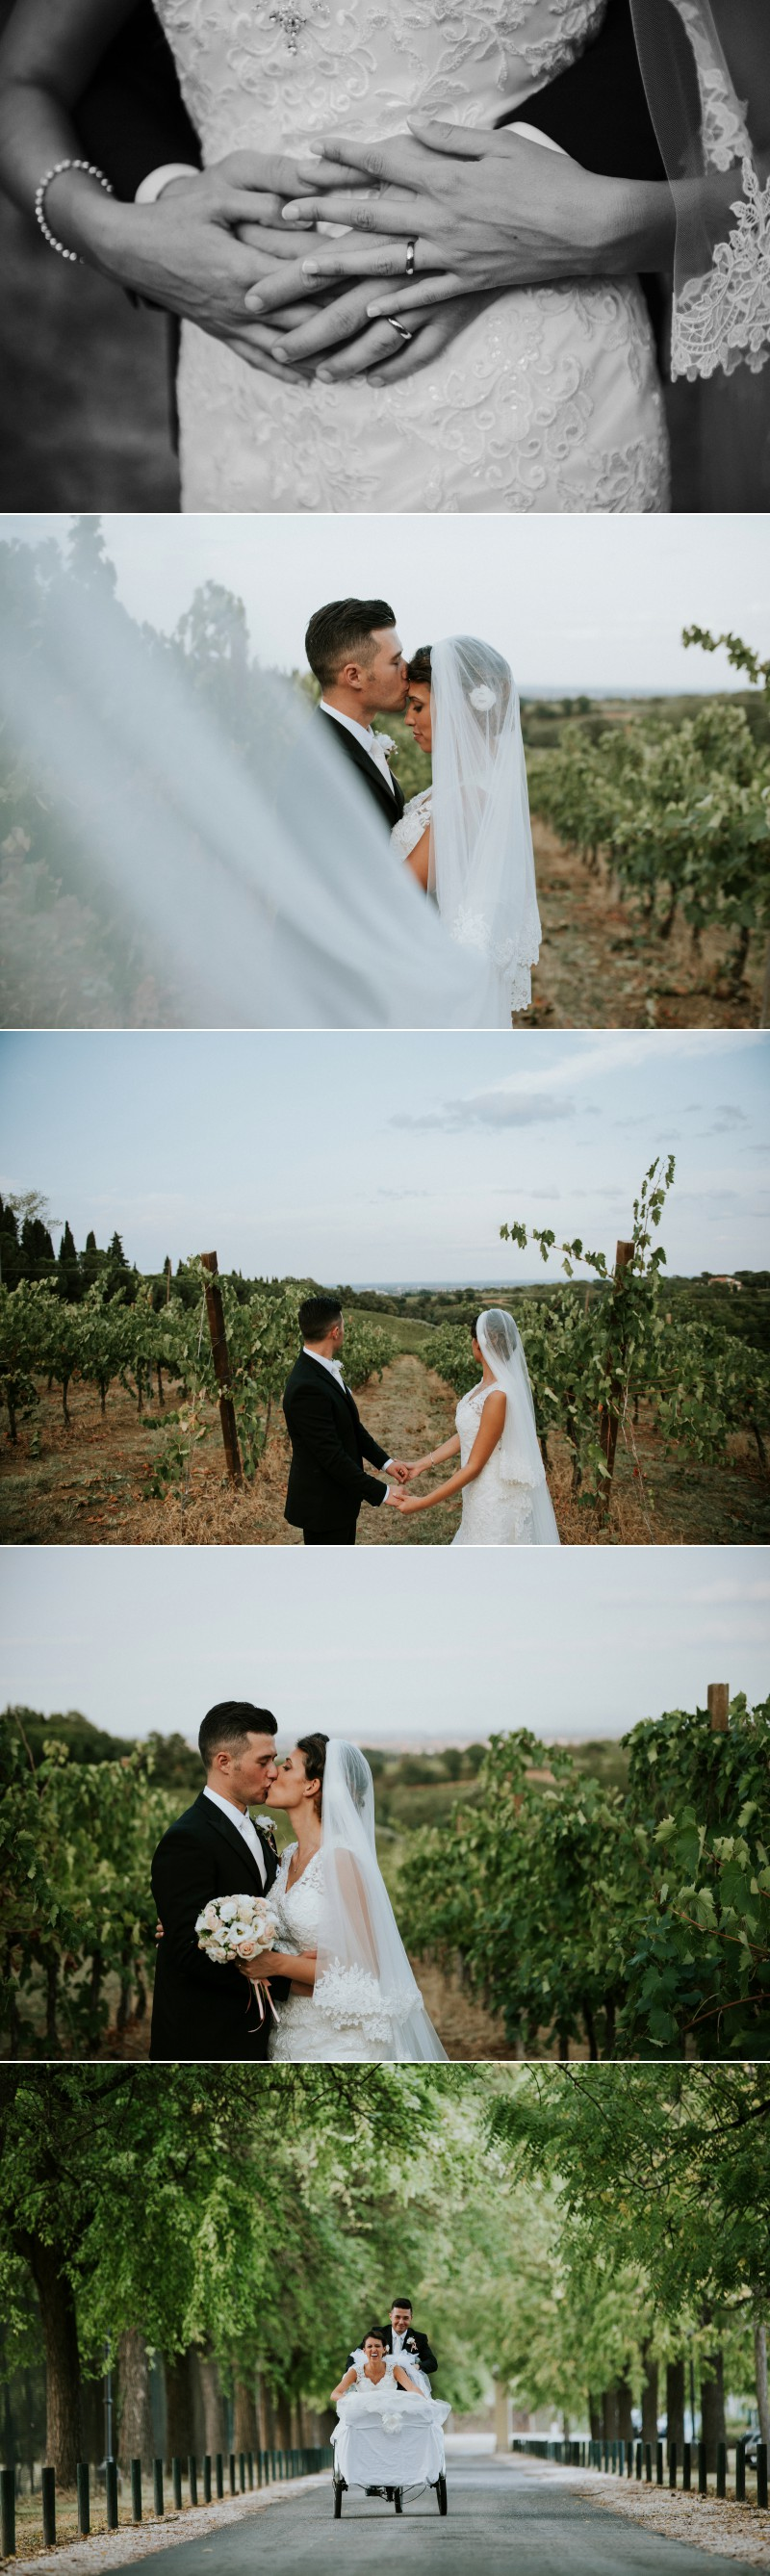 Wedding Photographer Bologna 9